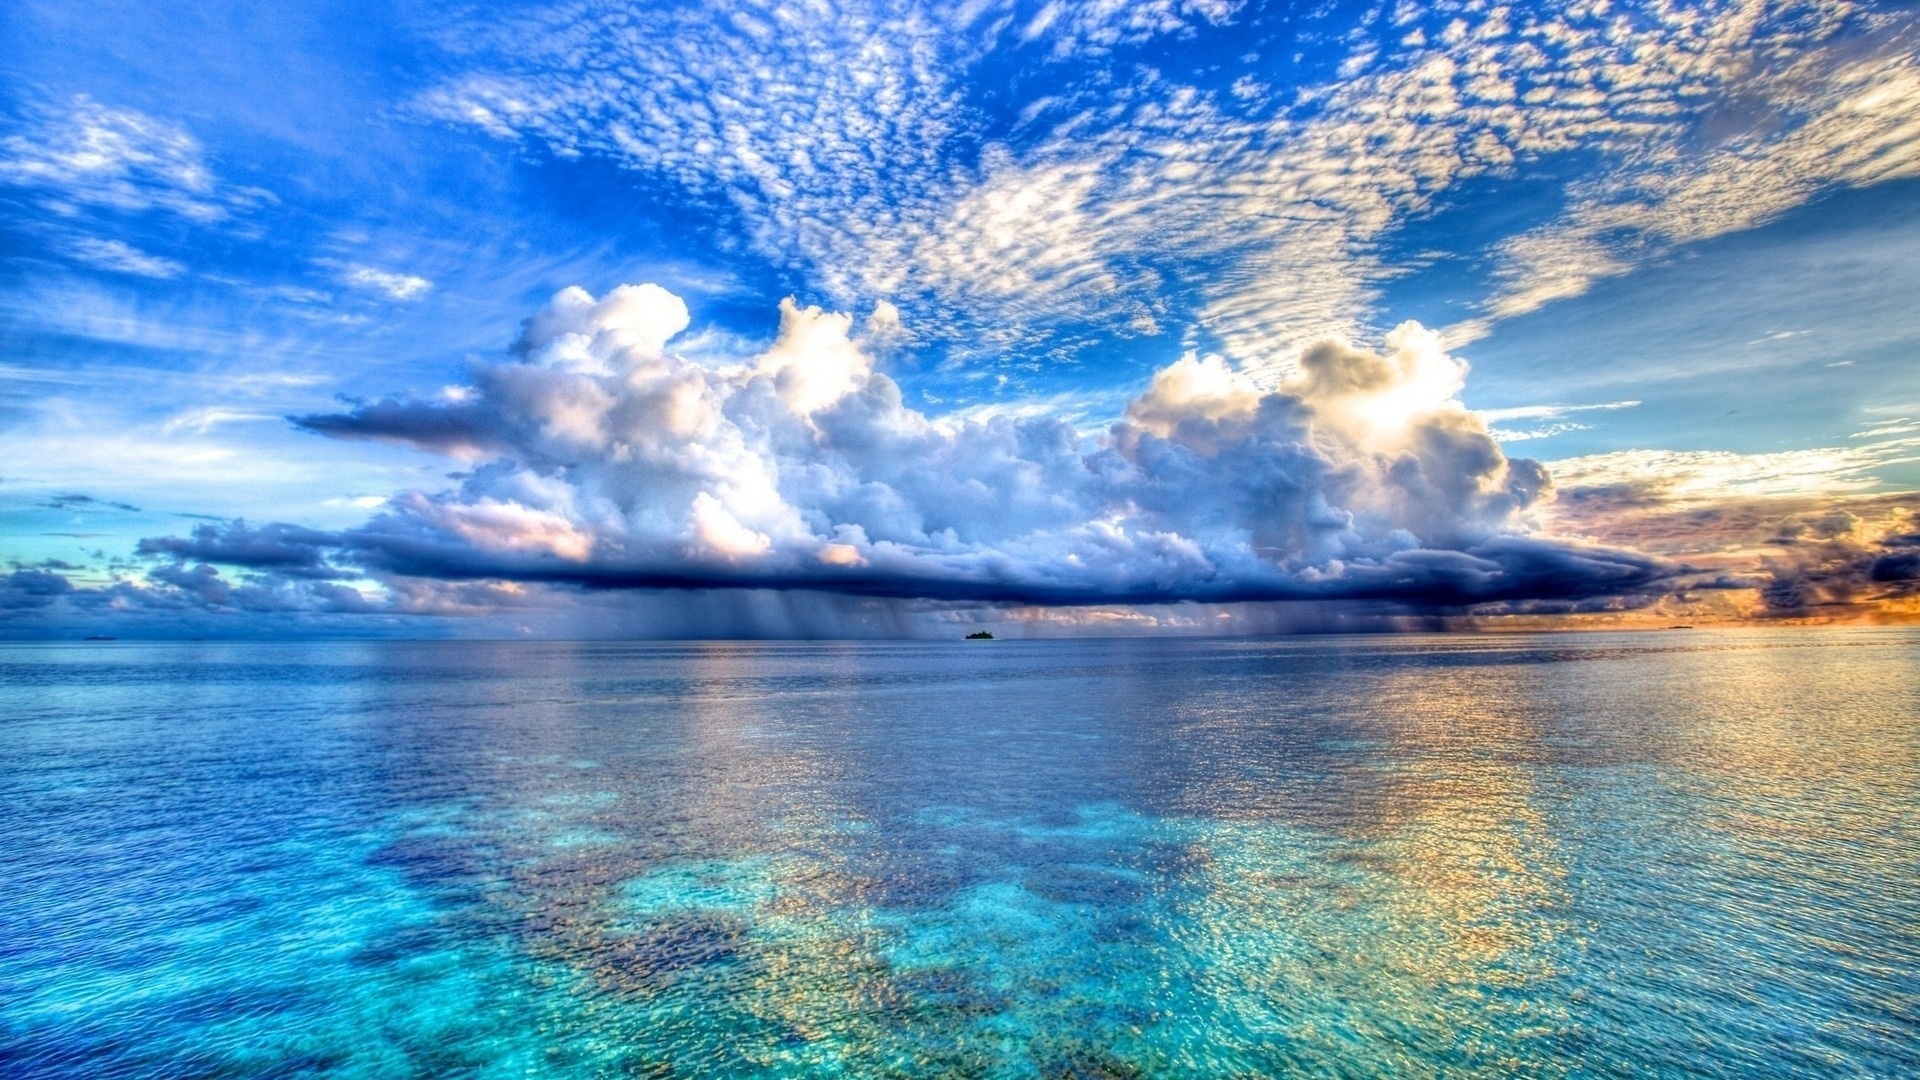 Nature blue sea and clouds backgrounds wallpapers HD.